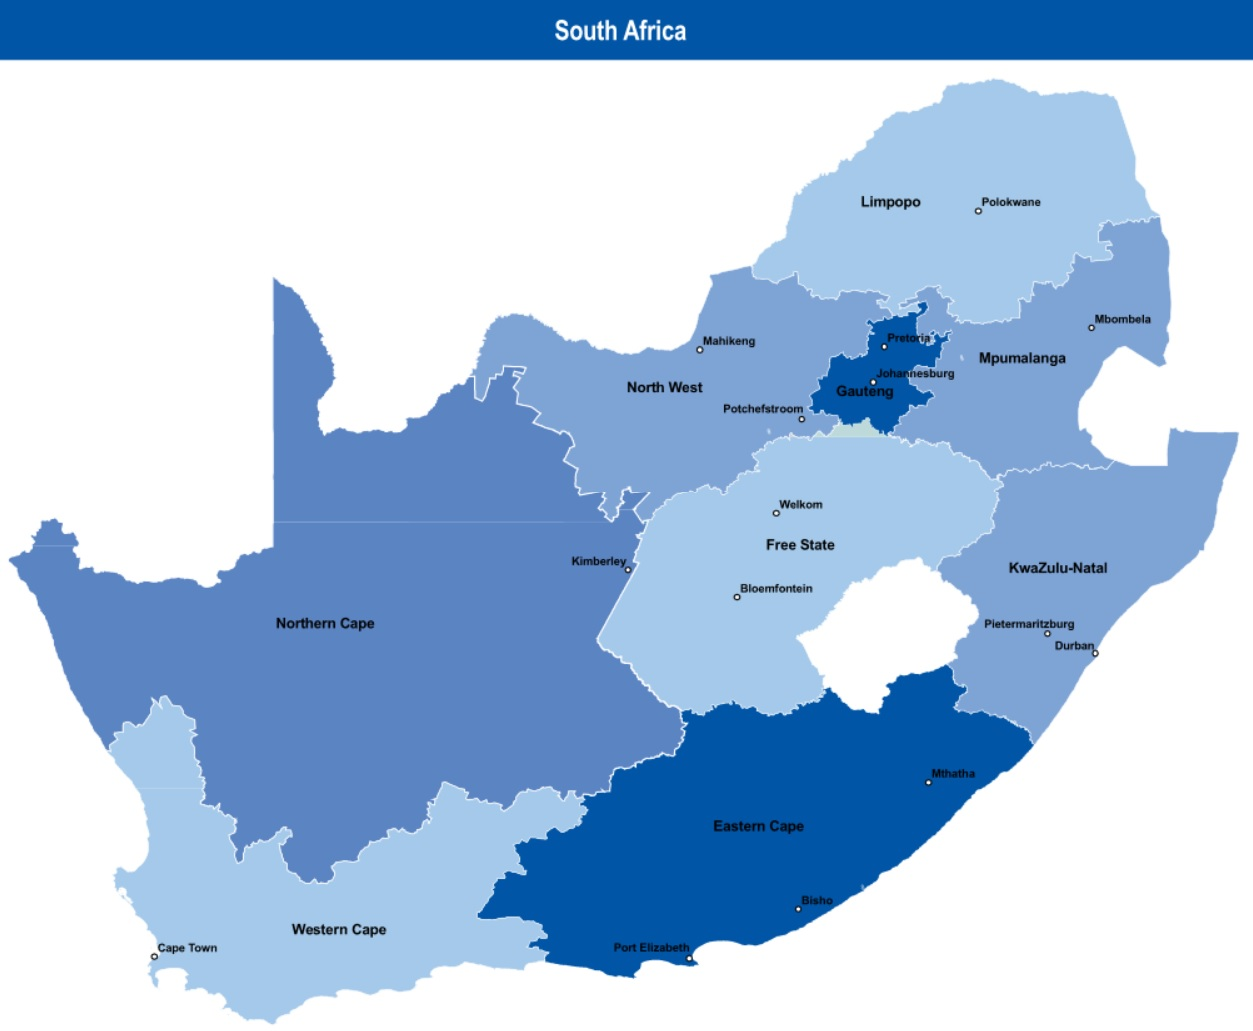 south africa map South Africa White population